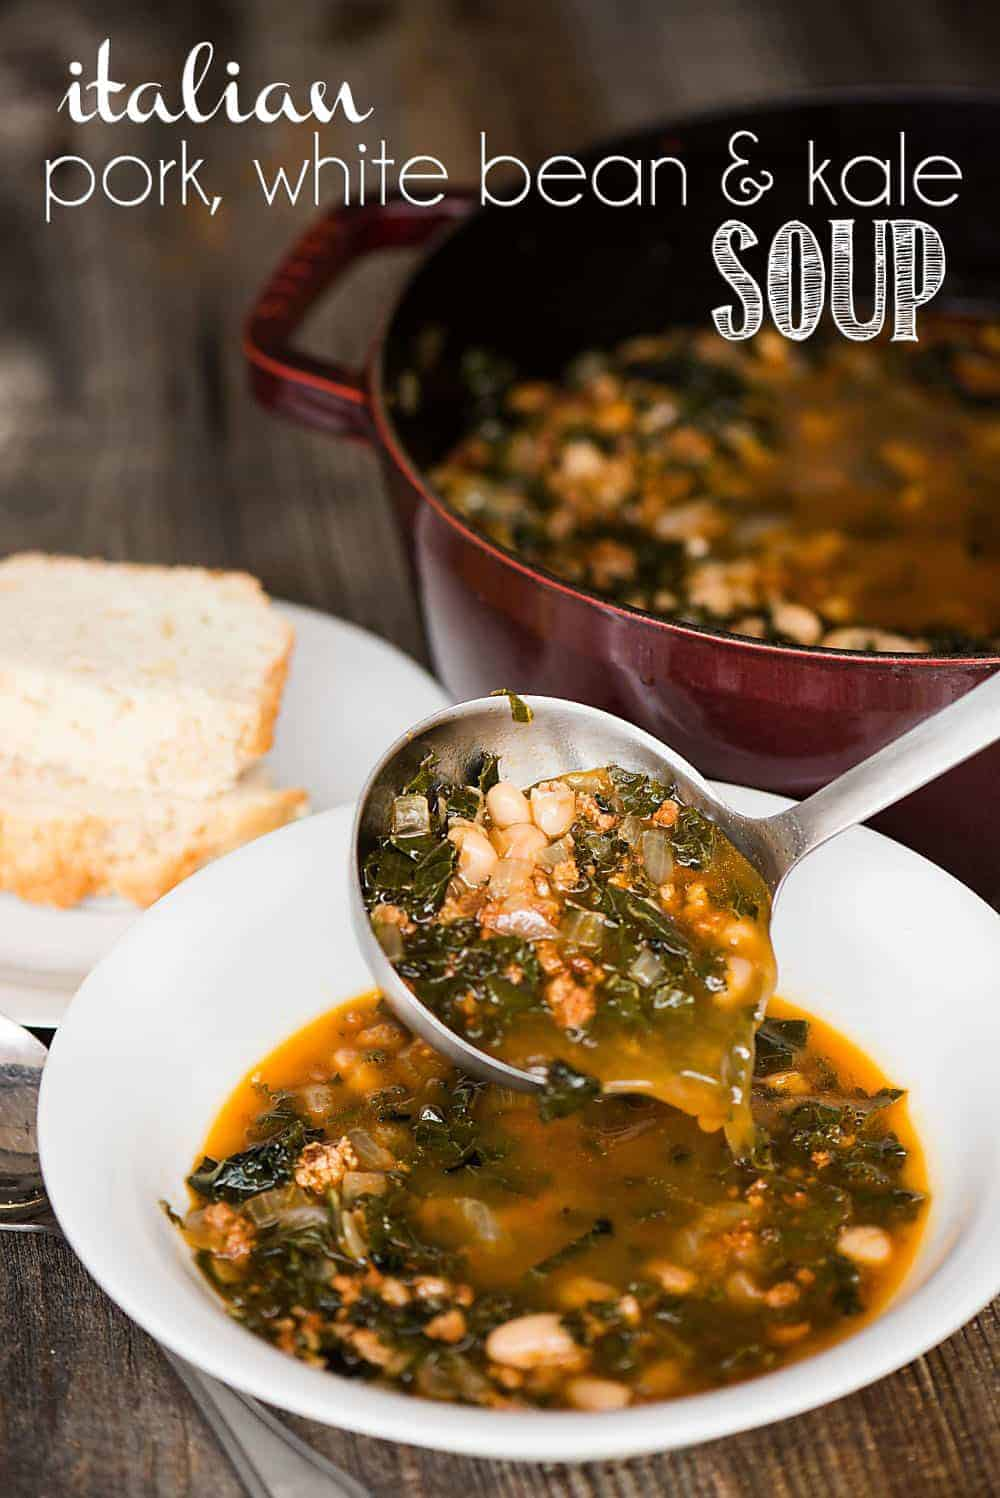 Italian Pork White Bean & Kale Soup is a hearty and healthy meal that is quick enough to serve as an easy weeknight dinner.